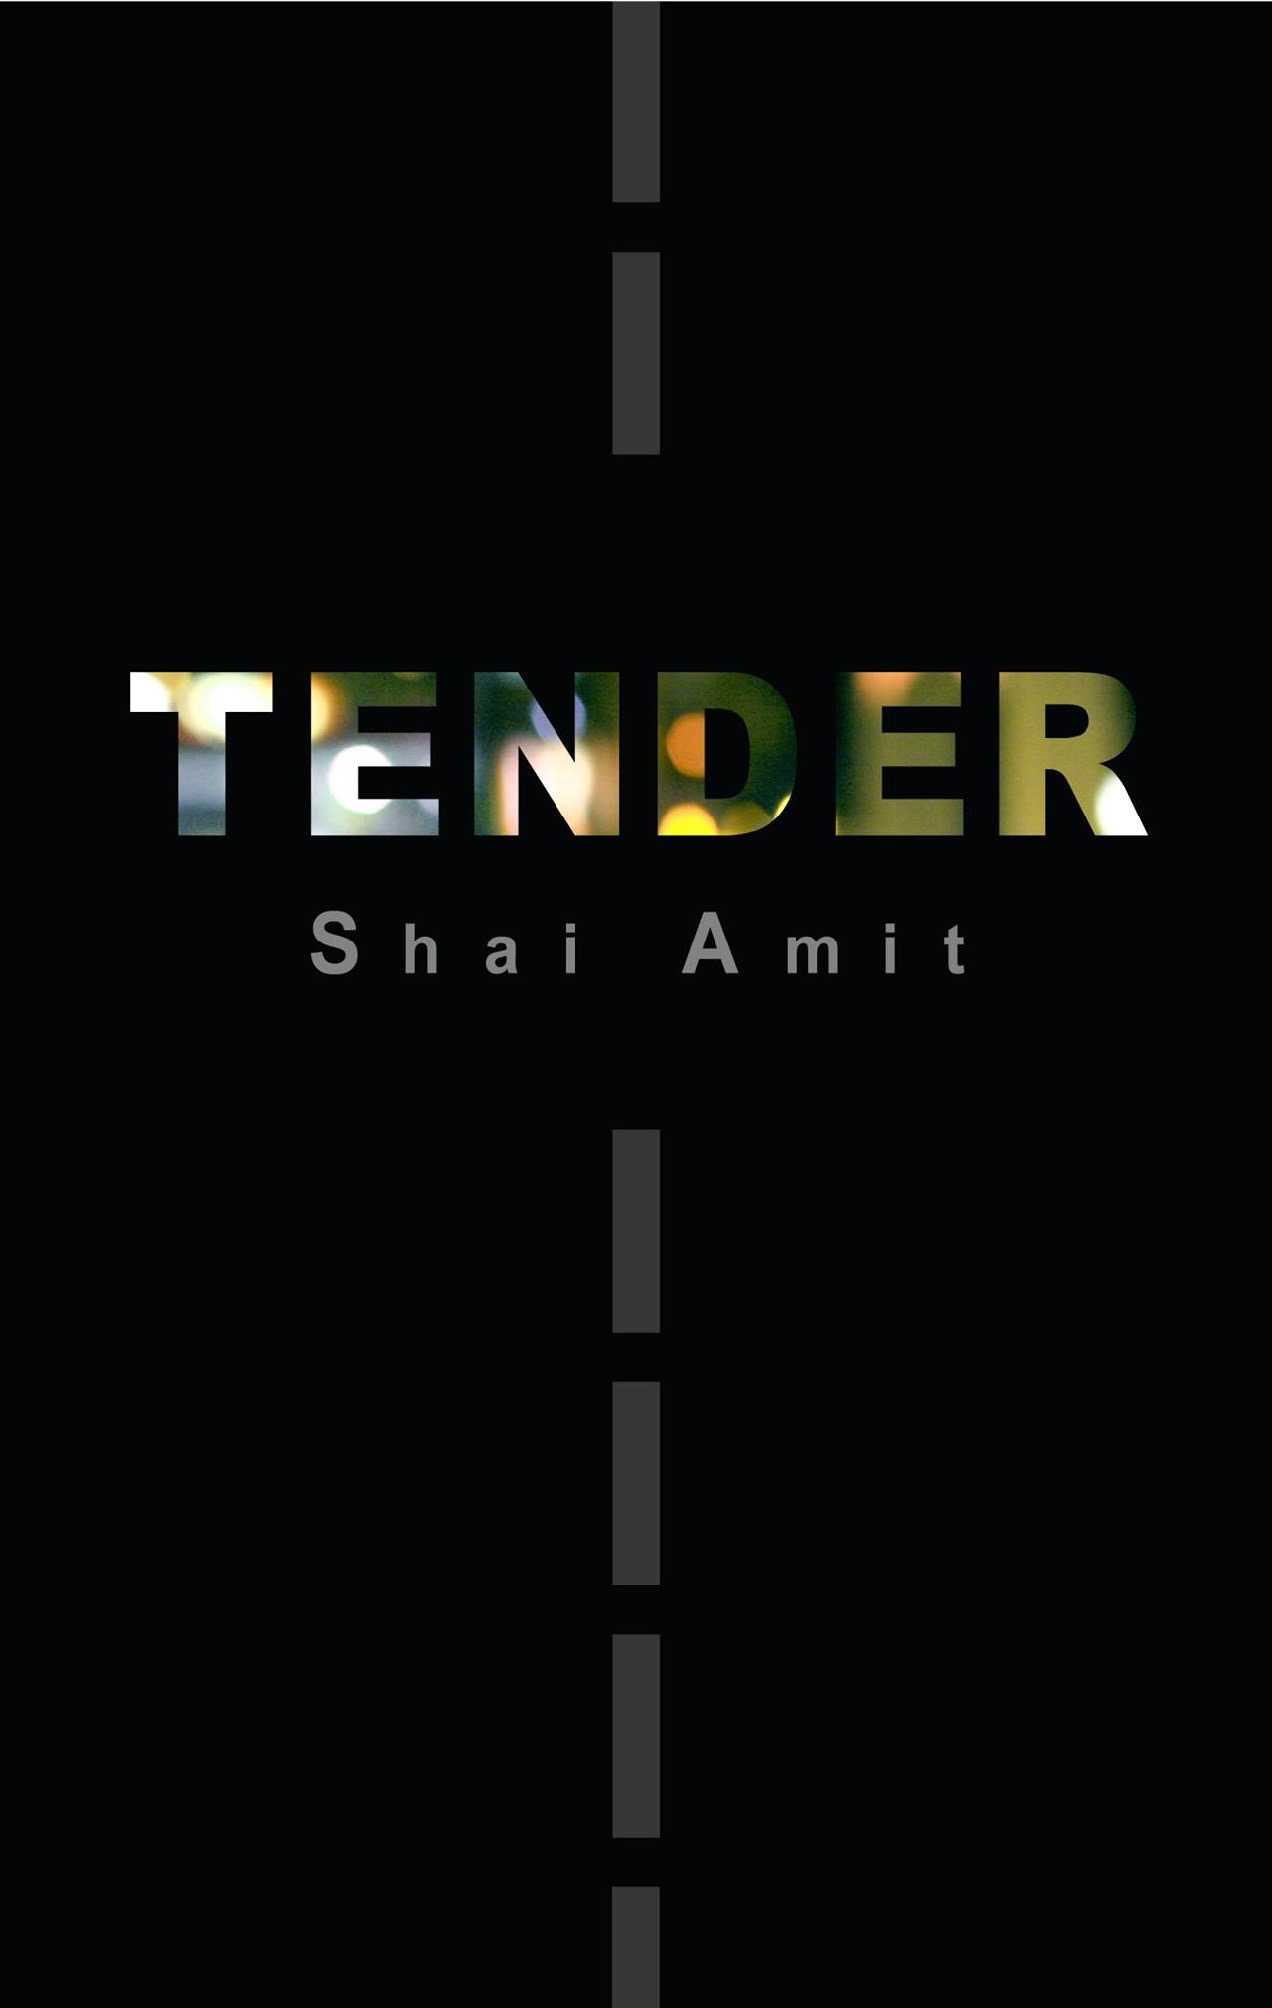 tender by Shai Amit